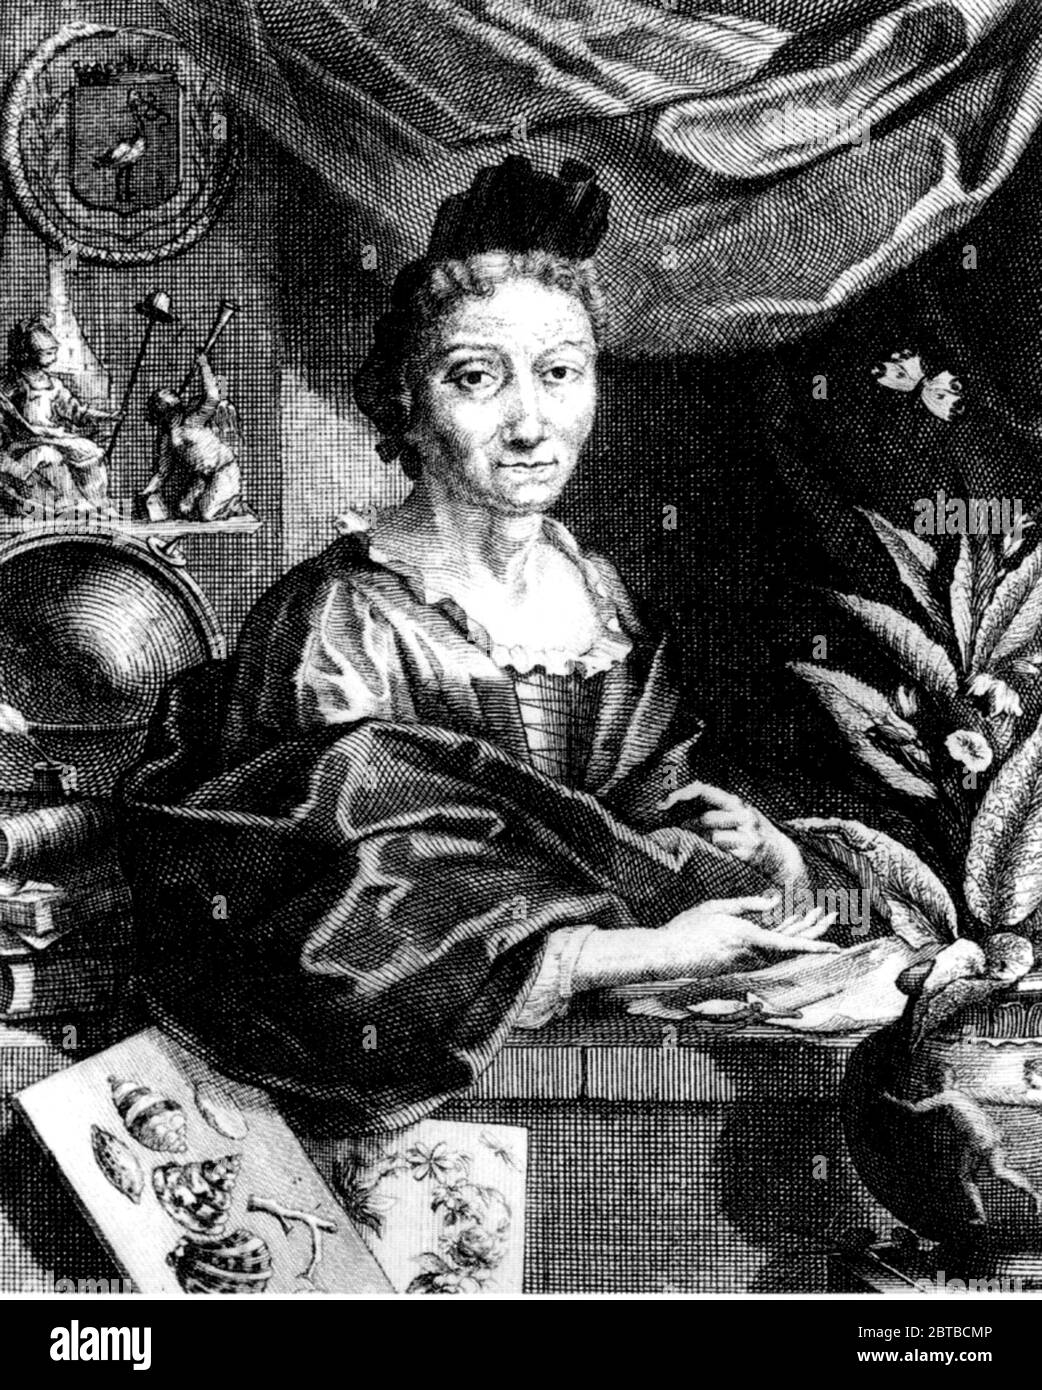 1700 c, GERMANY : The german naturalist woman painter , scientific illustrator and biologist MARIA SIBYLLA MERIAN ( 1647 - 1717 ). Sybylla's father was the Swiss engraver and pubblisher Matthäus Merian ( Matthew , 1593 - 1650 ) the Elder . Portrait by engraver Jacobus Houbraken from a portrait by Georg Gsell . - SYBILLA - HISTORY - foto storica storiche - portrait - ritratto - NATURALISTA - NATURALIST - SCIENZA - SCIENCE - BIOLOGY - BIOLOGIA - illustratrice - illustratore - illustrator - woman painter - pittrice - pittura - painting - ARTE - ARTS - ART - illustration - illustrazione - incision Stock Photo